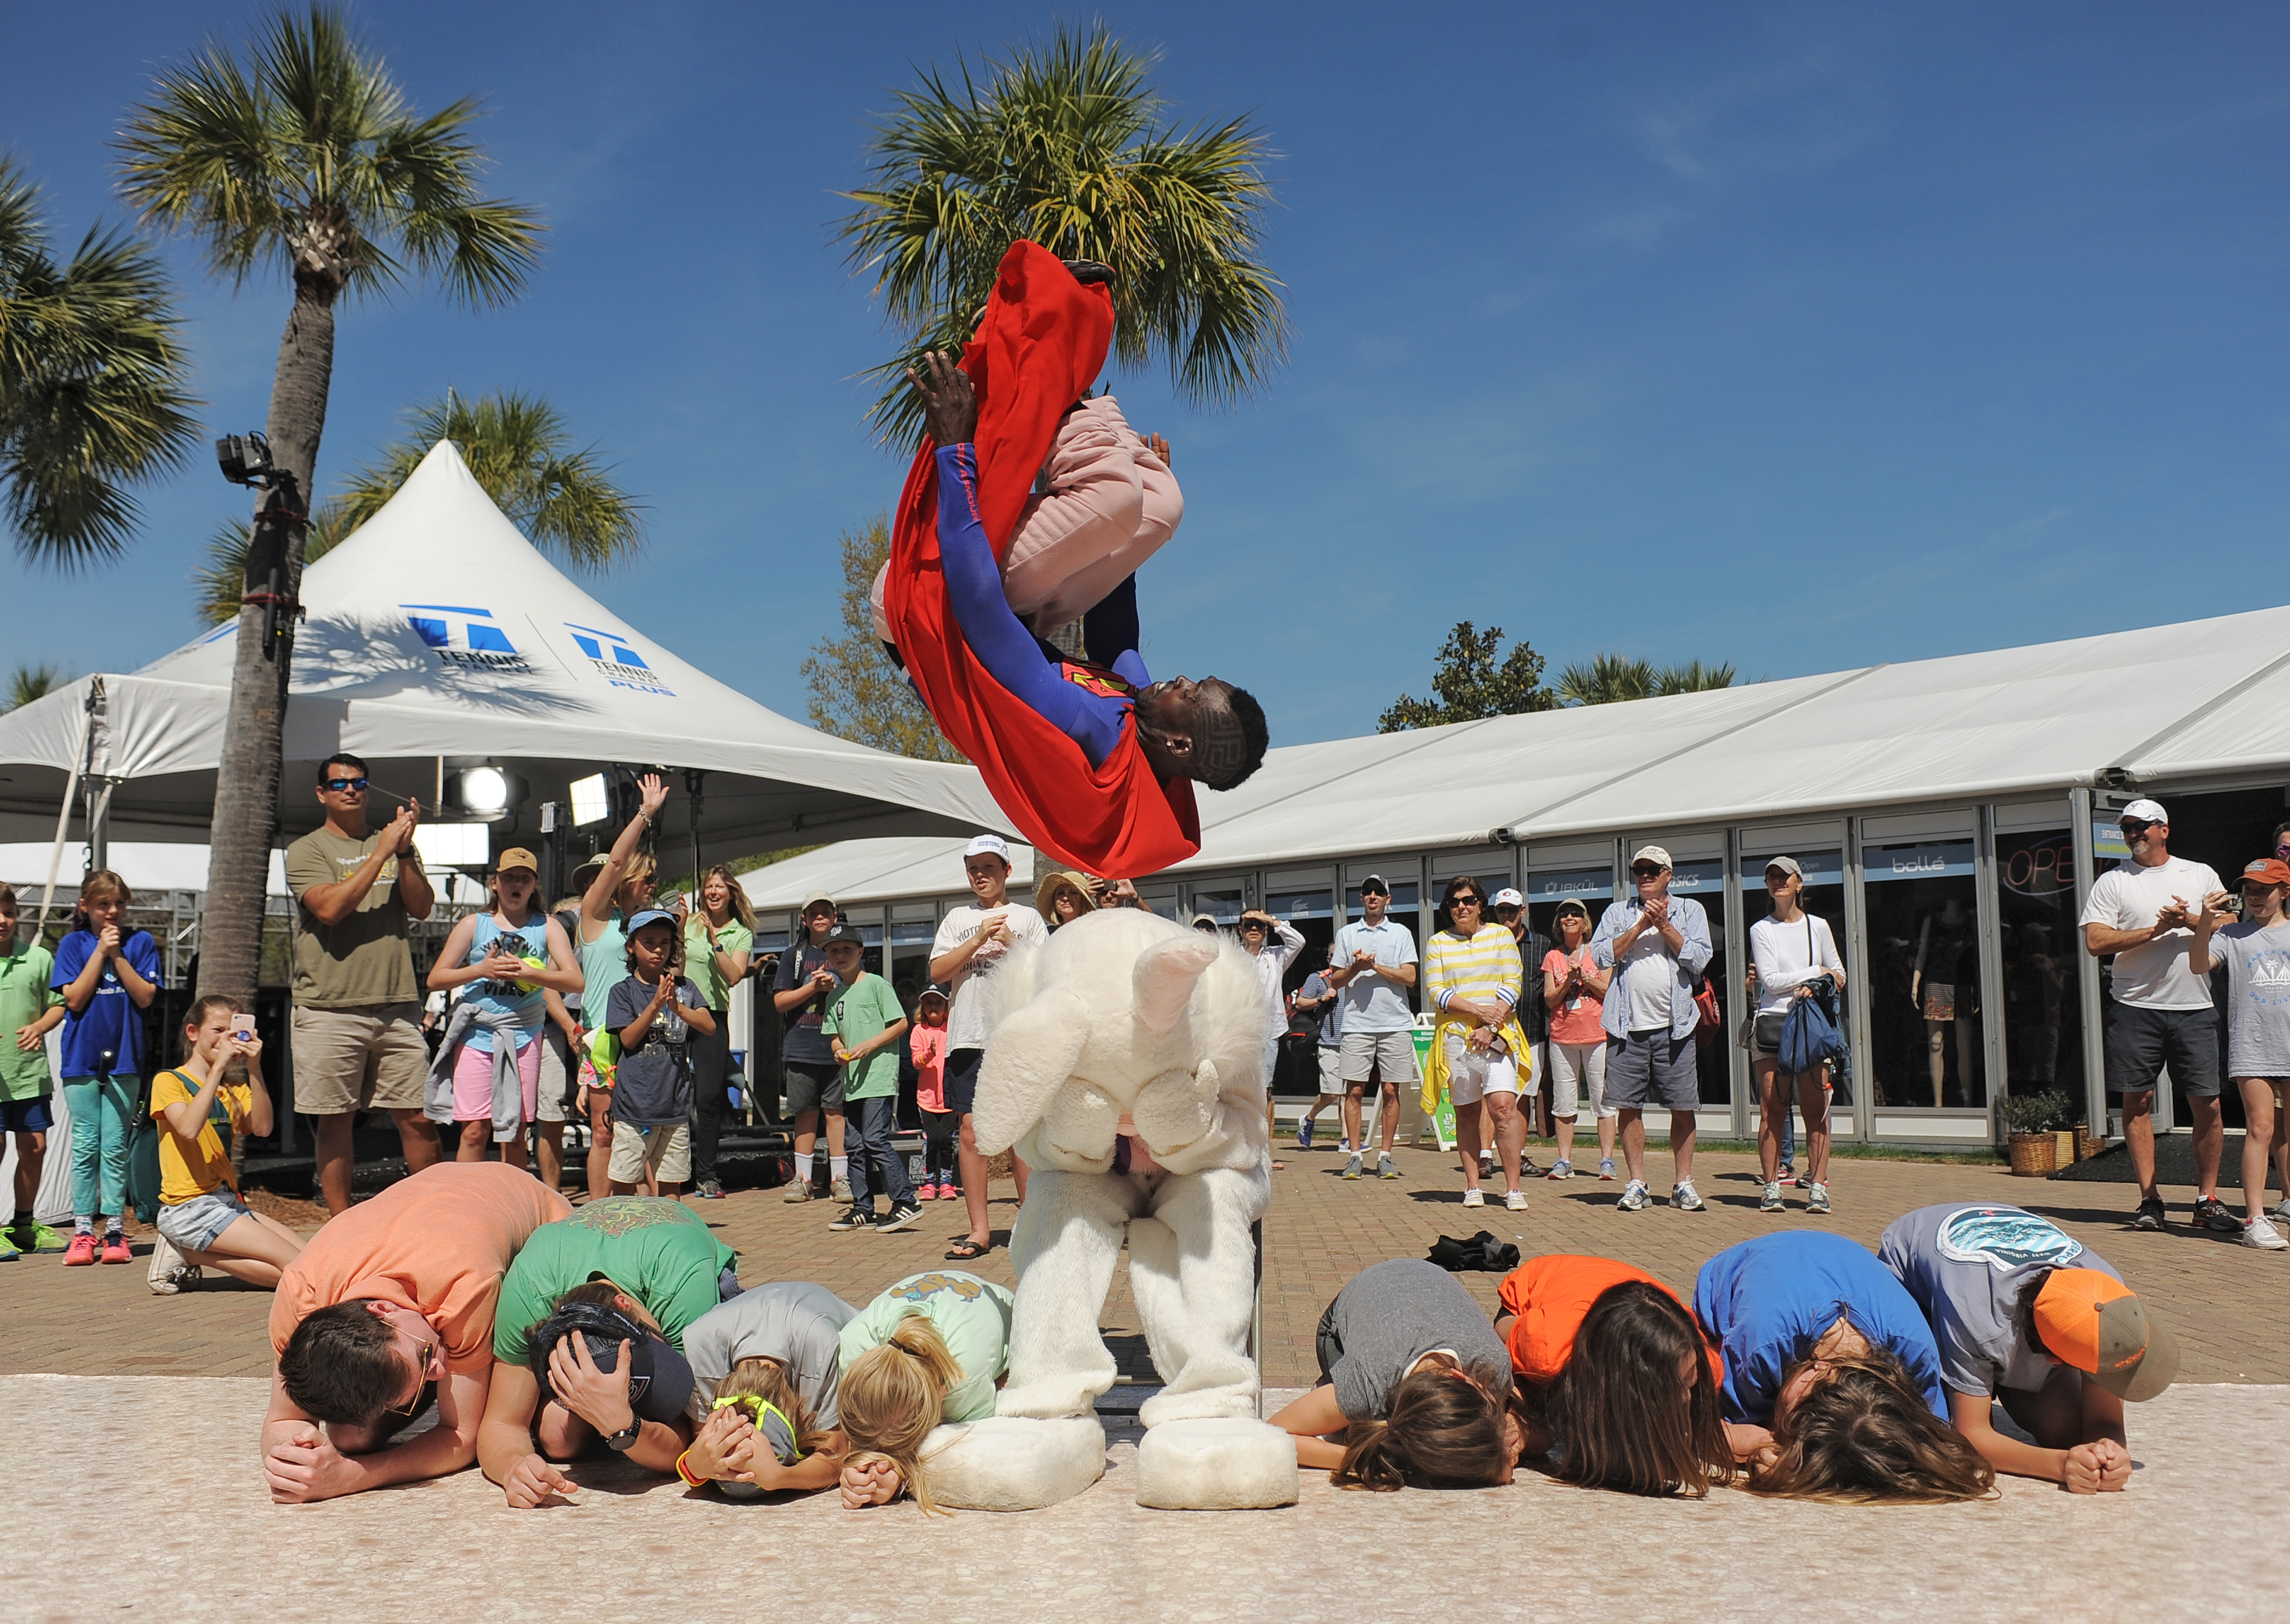 Kyle Kotic, aka Superman, flips over the Easter Bunny and members of the crowd for the finale of the strongman and break dance show the crew performed over Family Weekend at the VCO.